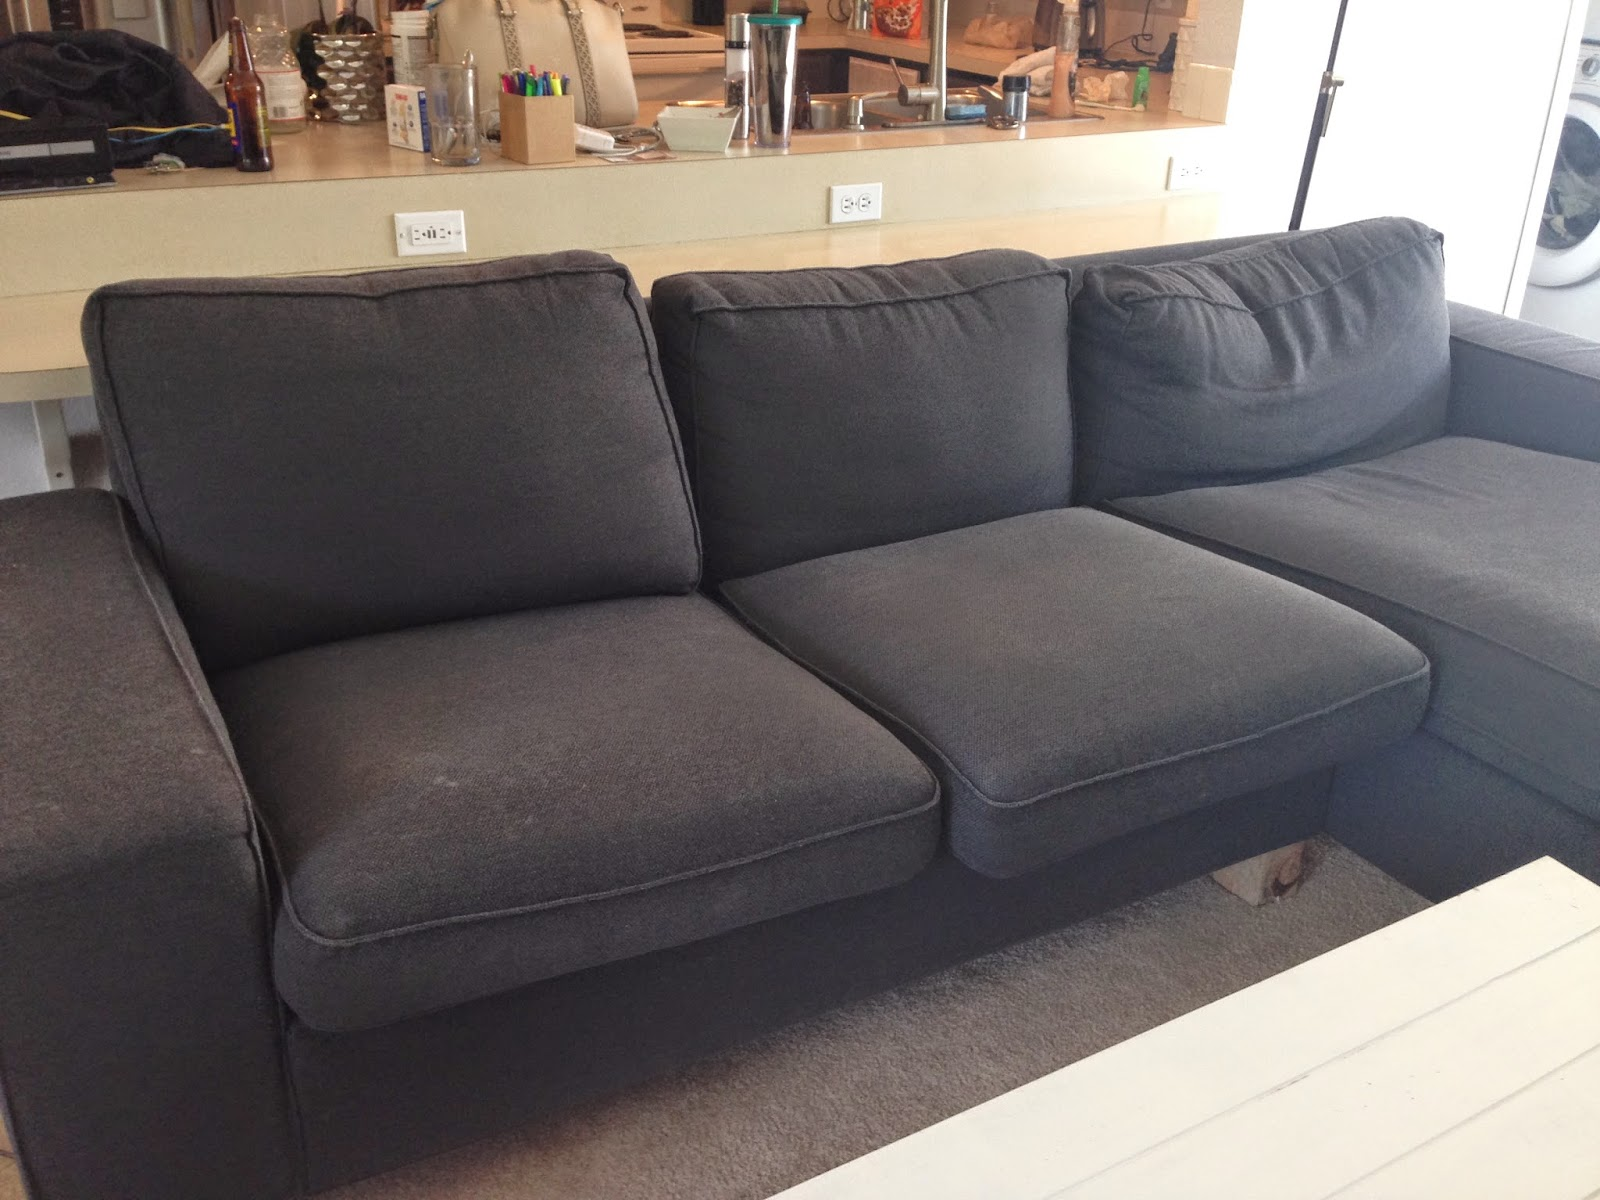 Ikea 5 Seat Sofa Tp Andco Reviewing Our Ikea Kivik Sectional After Almost